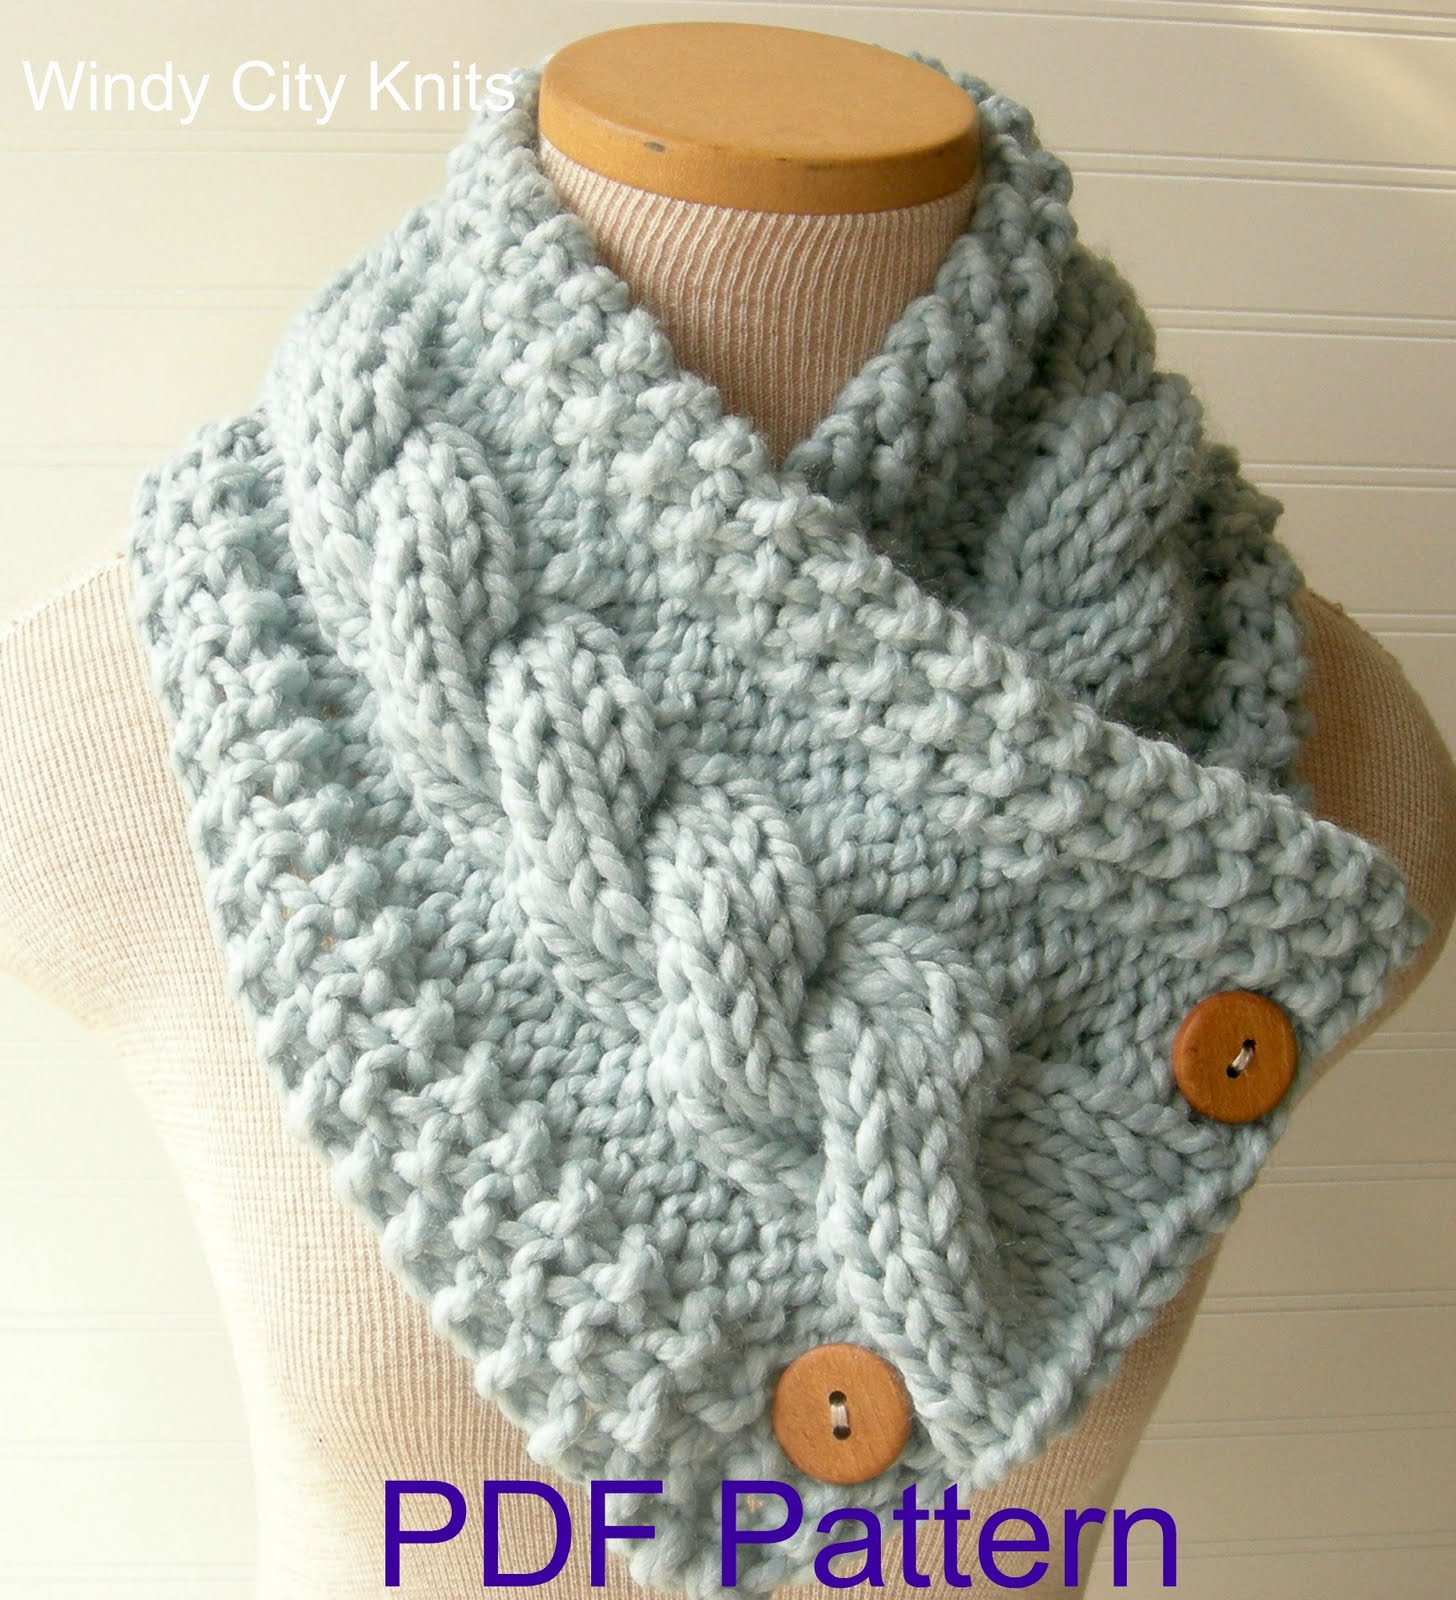 Free Cable Scarf Knitting Patterns : WindyCityKnits: Knit Cable Cowl Scarf Pattern Pdf